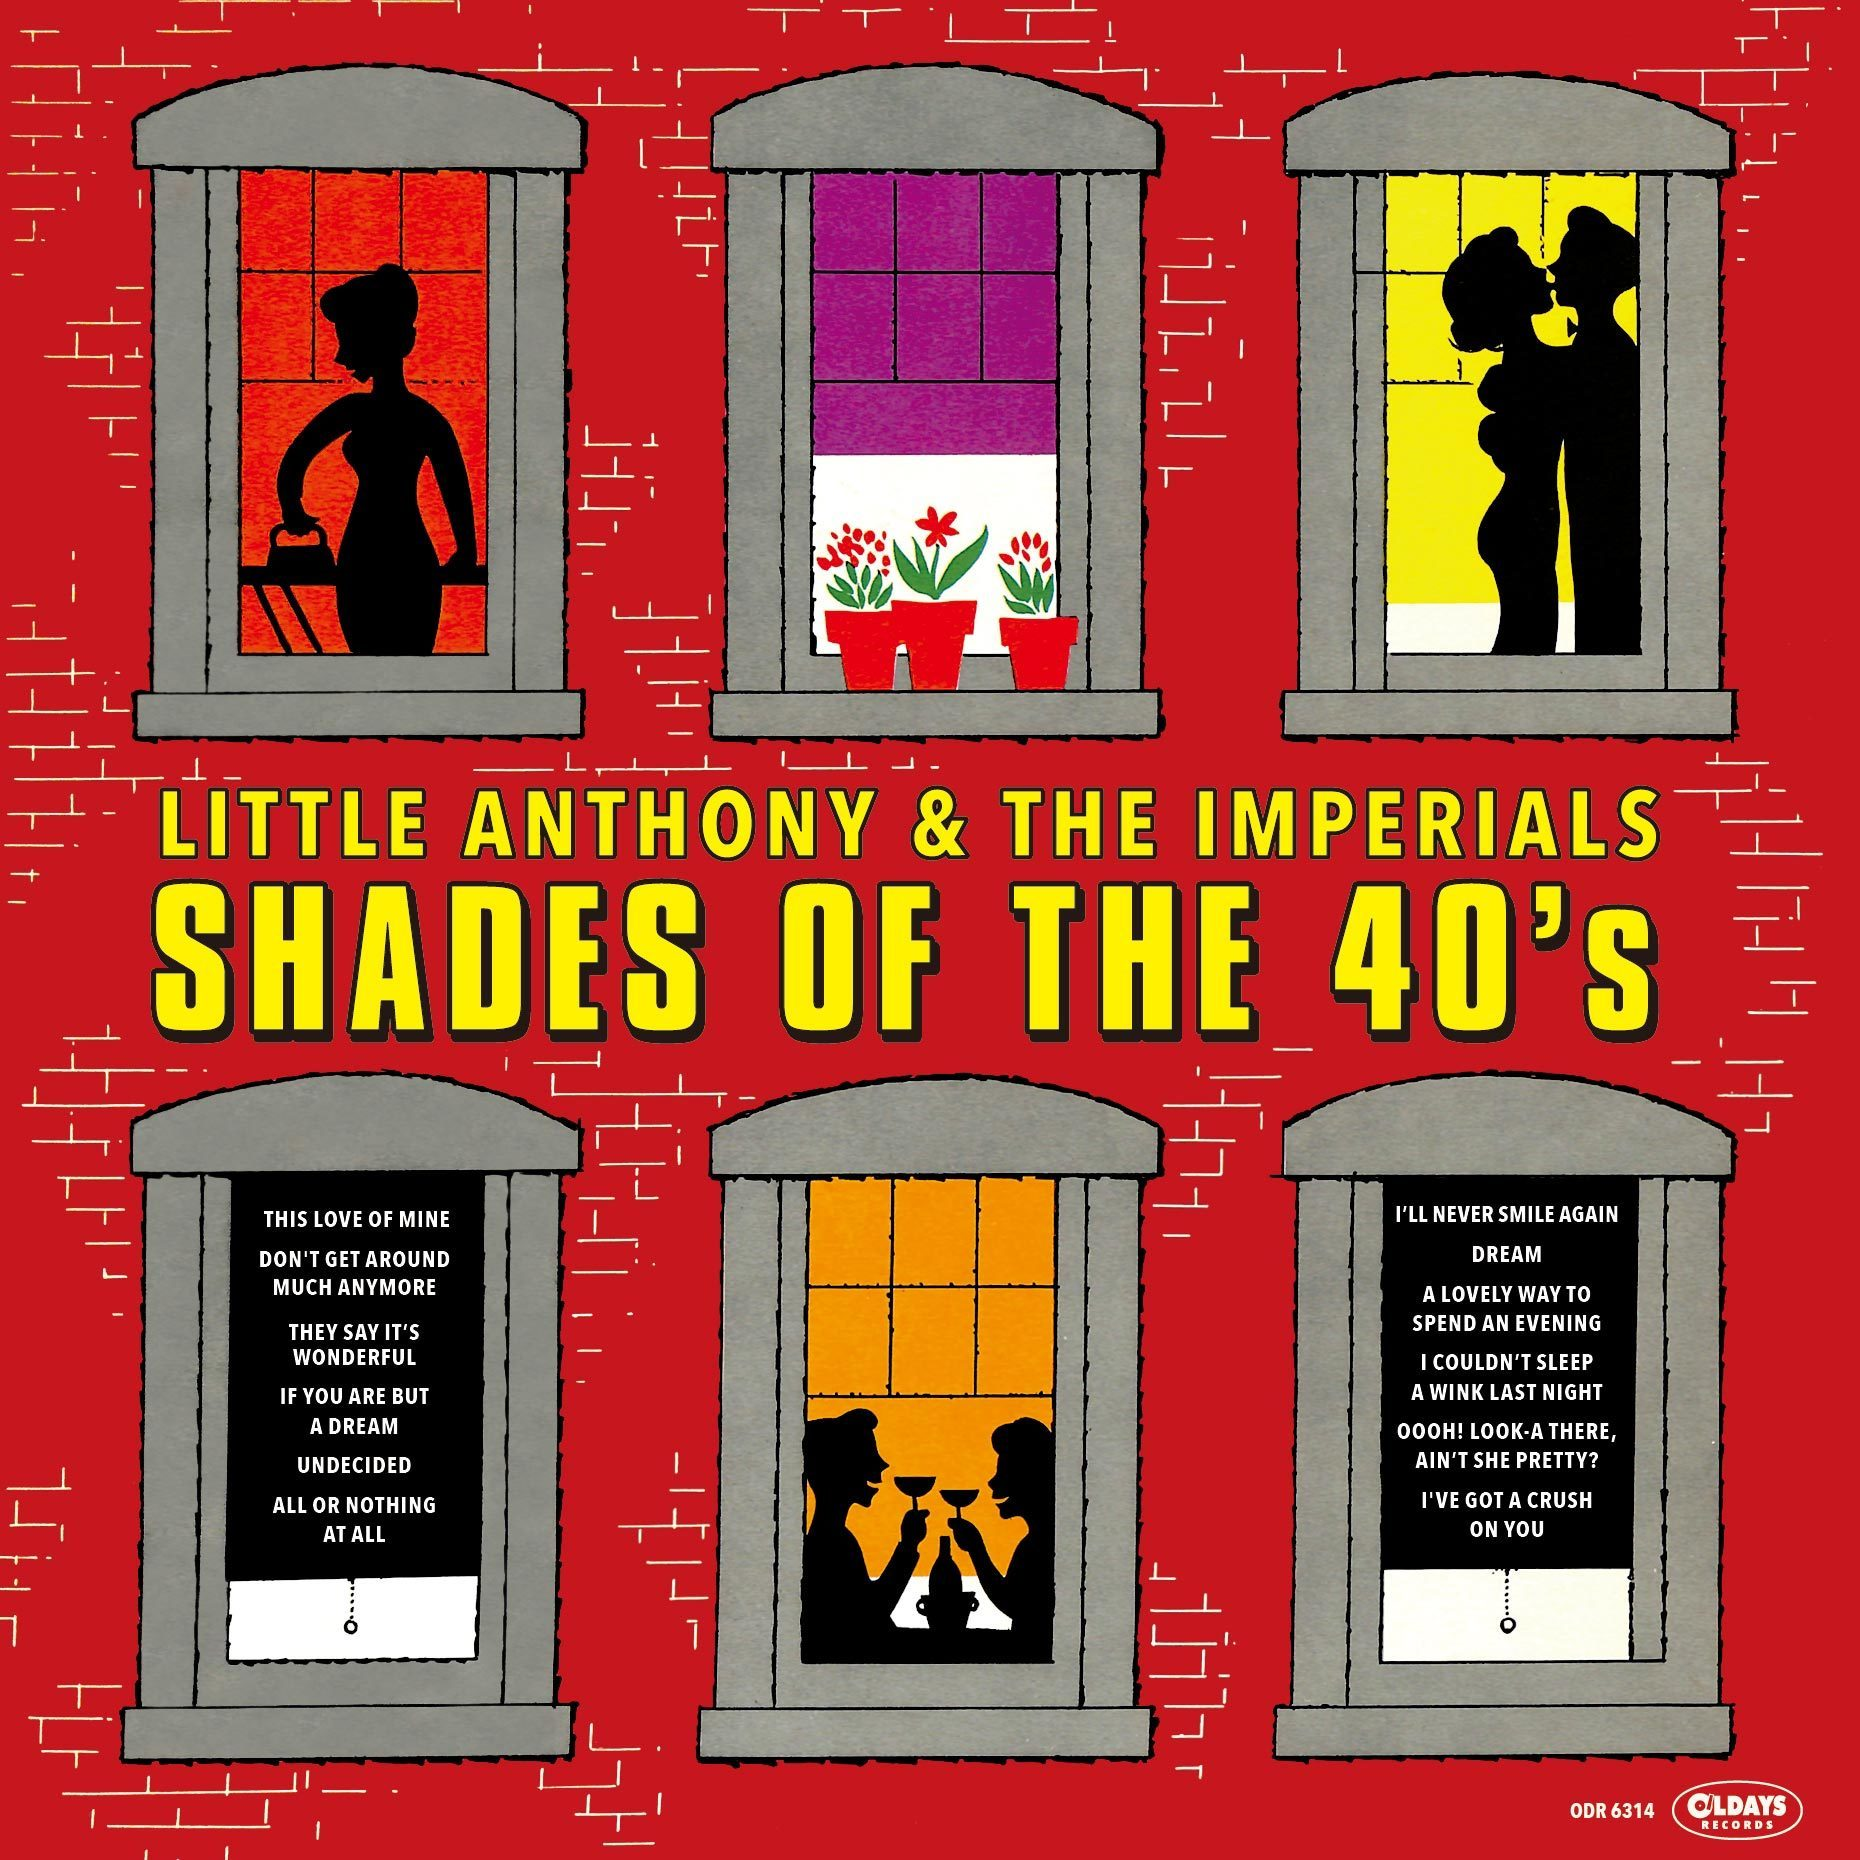 Shades of The 40's - Little Anthony & The Imperials